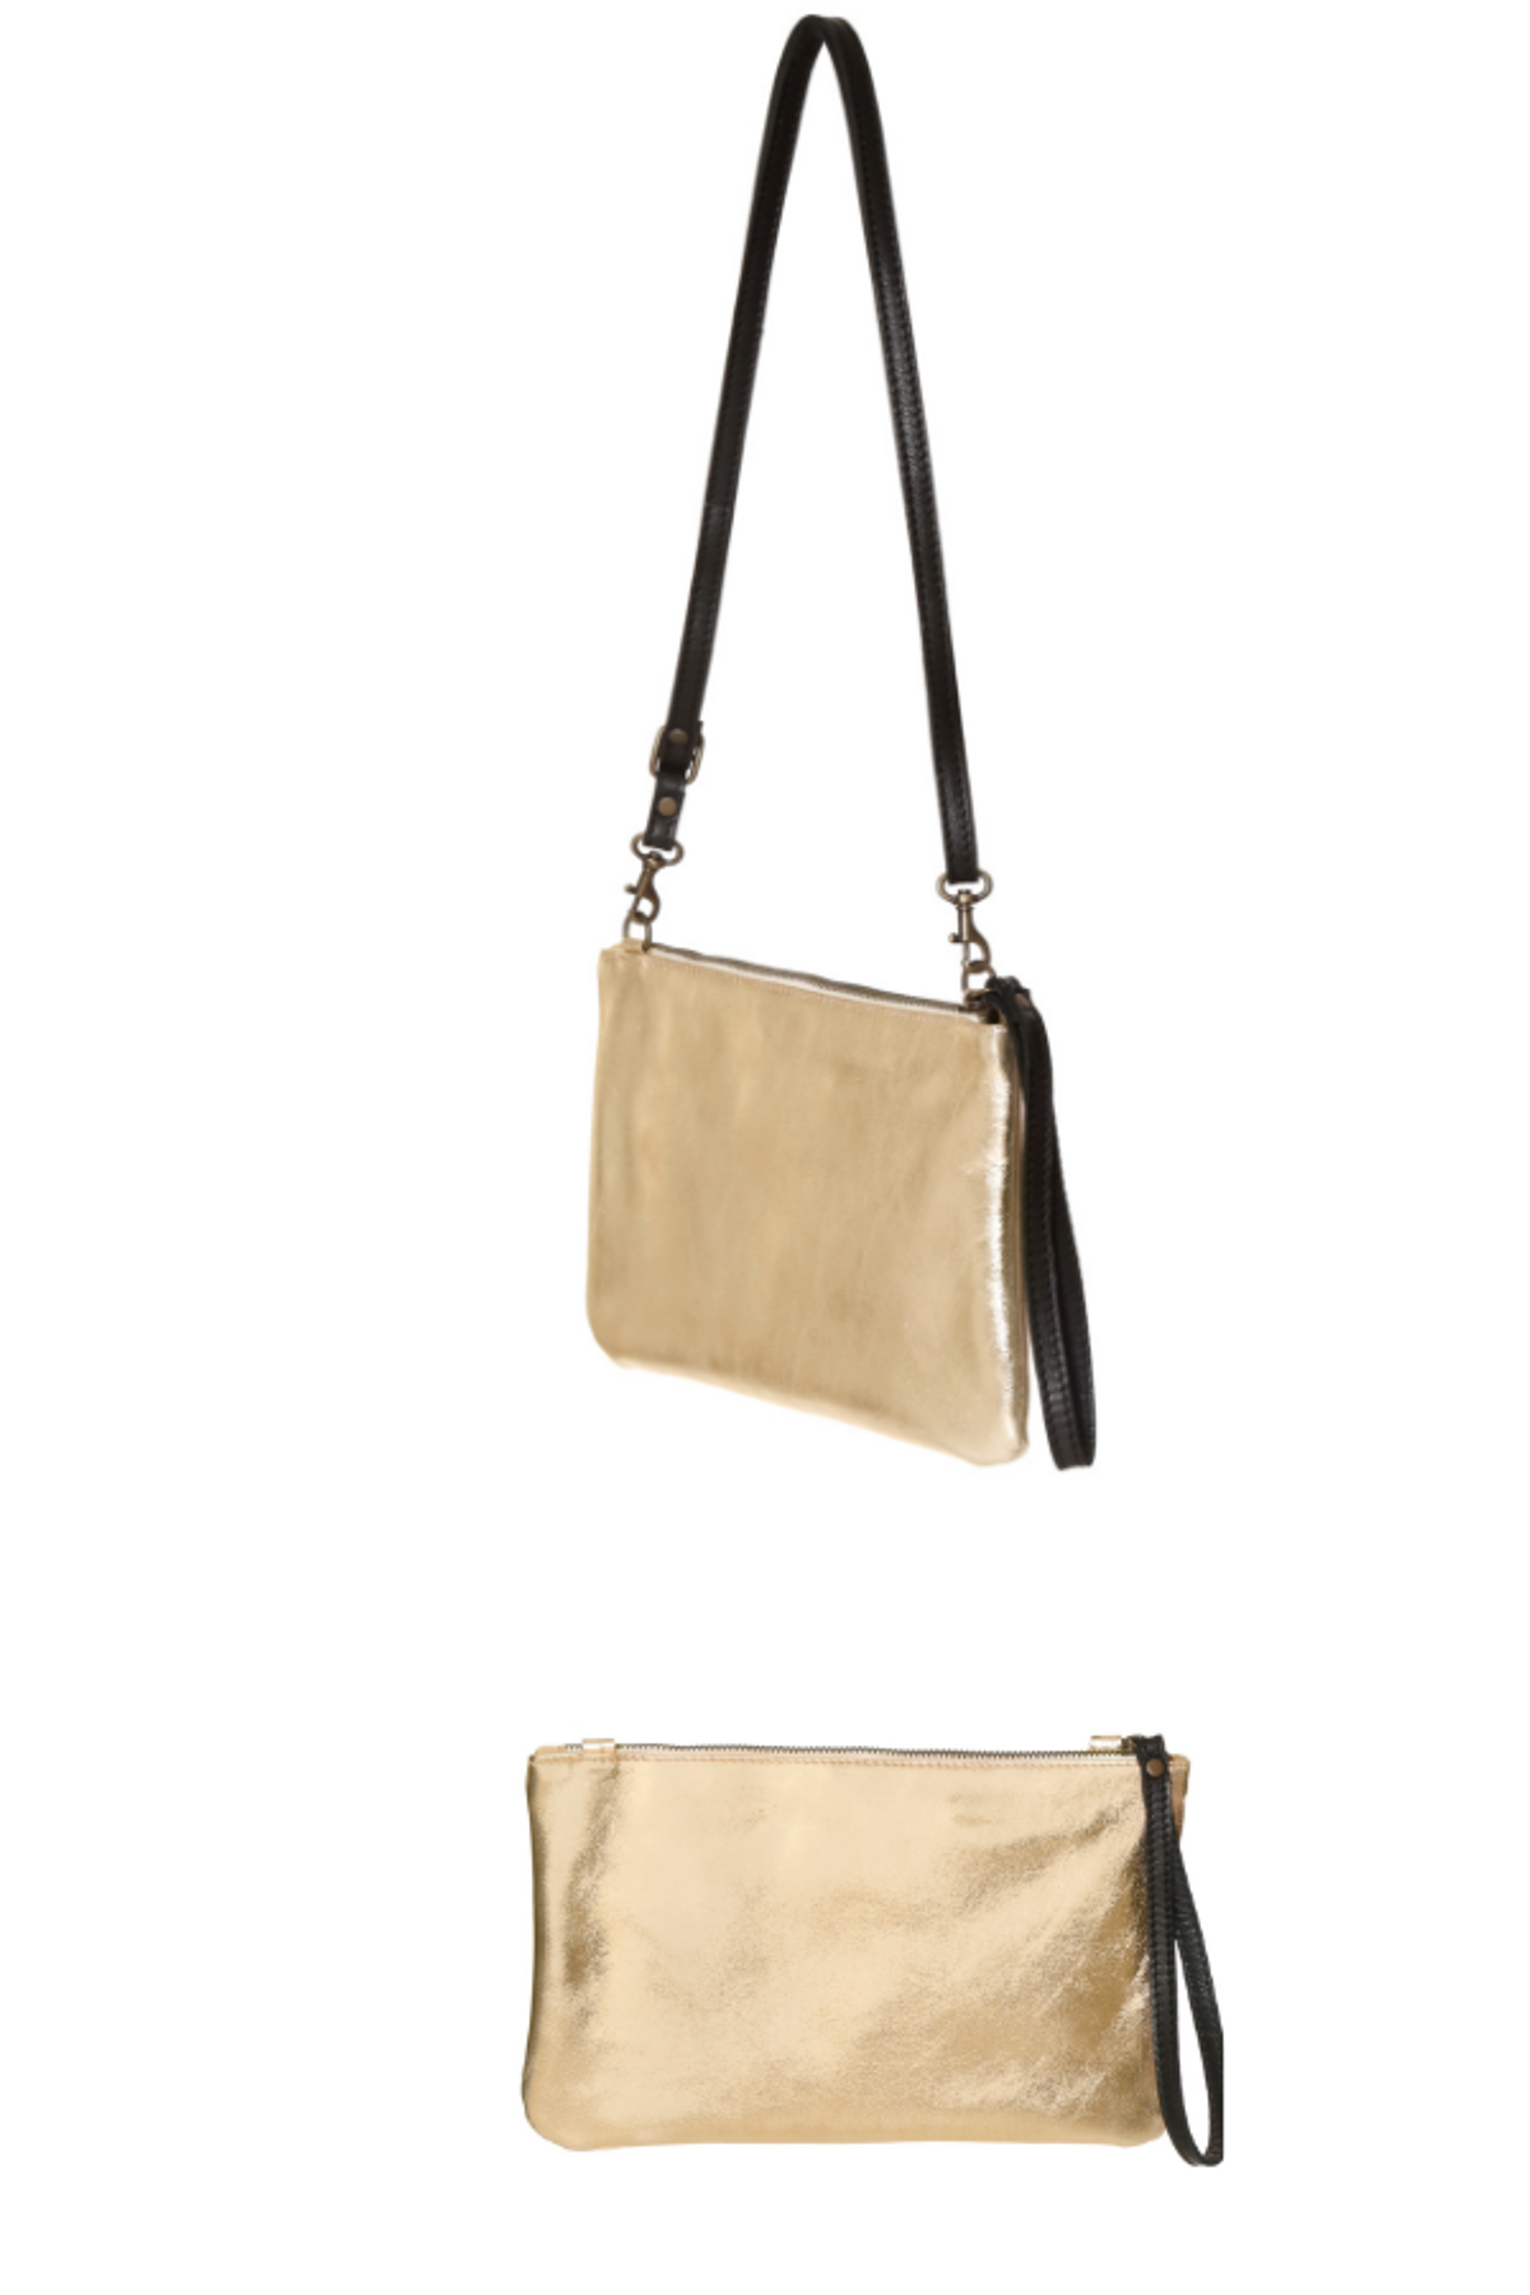 88d839a6 Gold leather small clutch and crossbody bag. Metallic leather purse ...